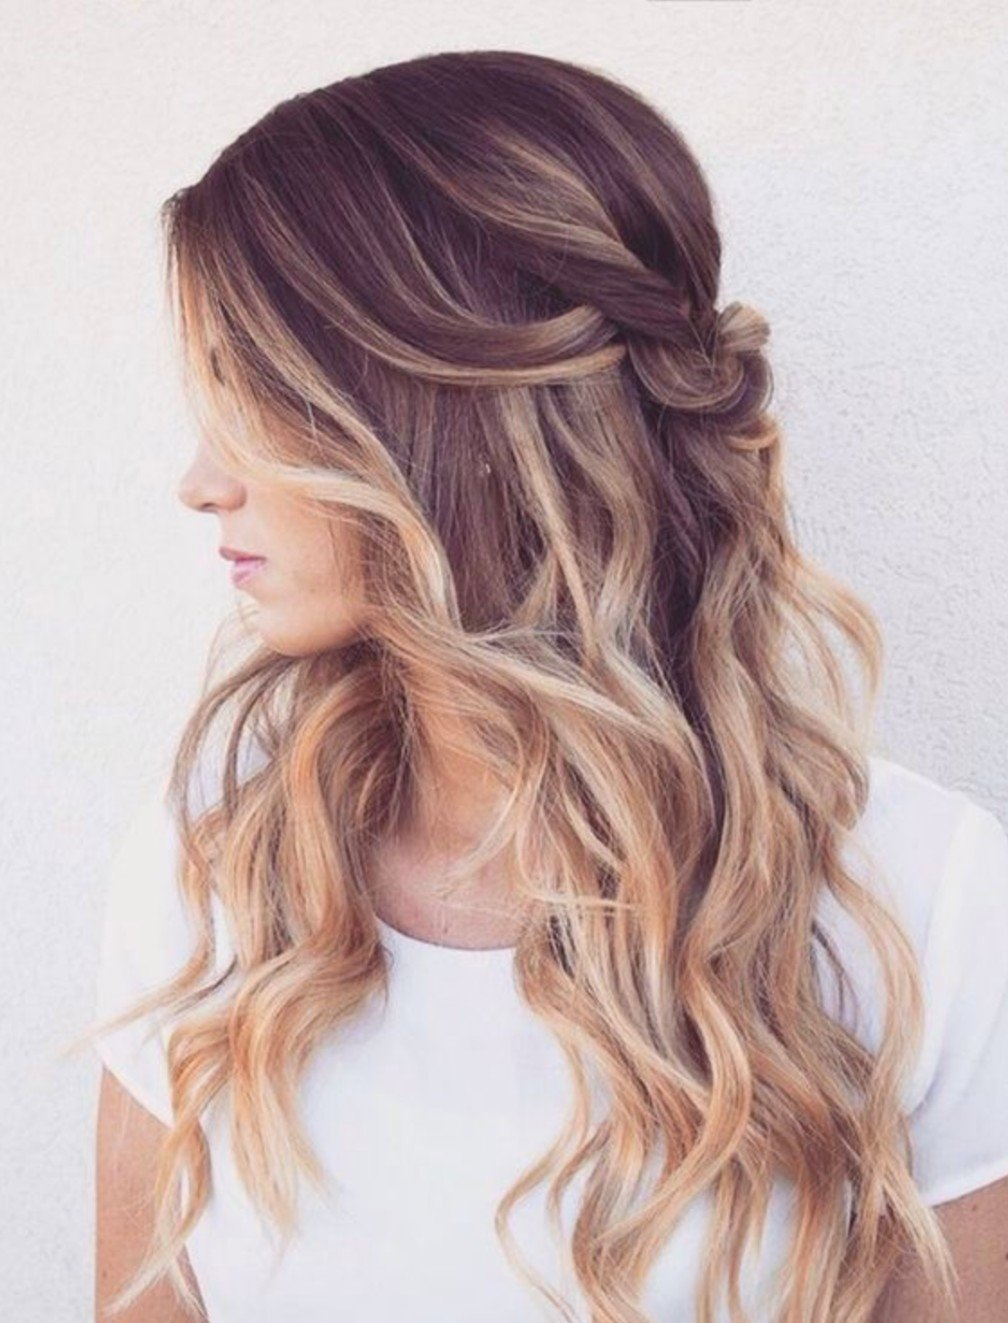 10 Attractive Hair Coloring Ideas For Blondes friday faves blonde hair color ideas style elixir 2020